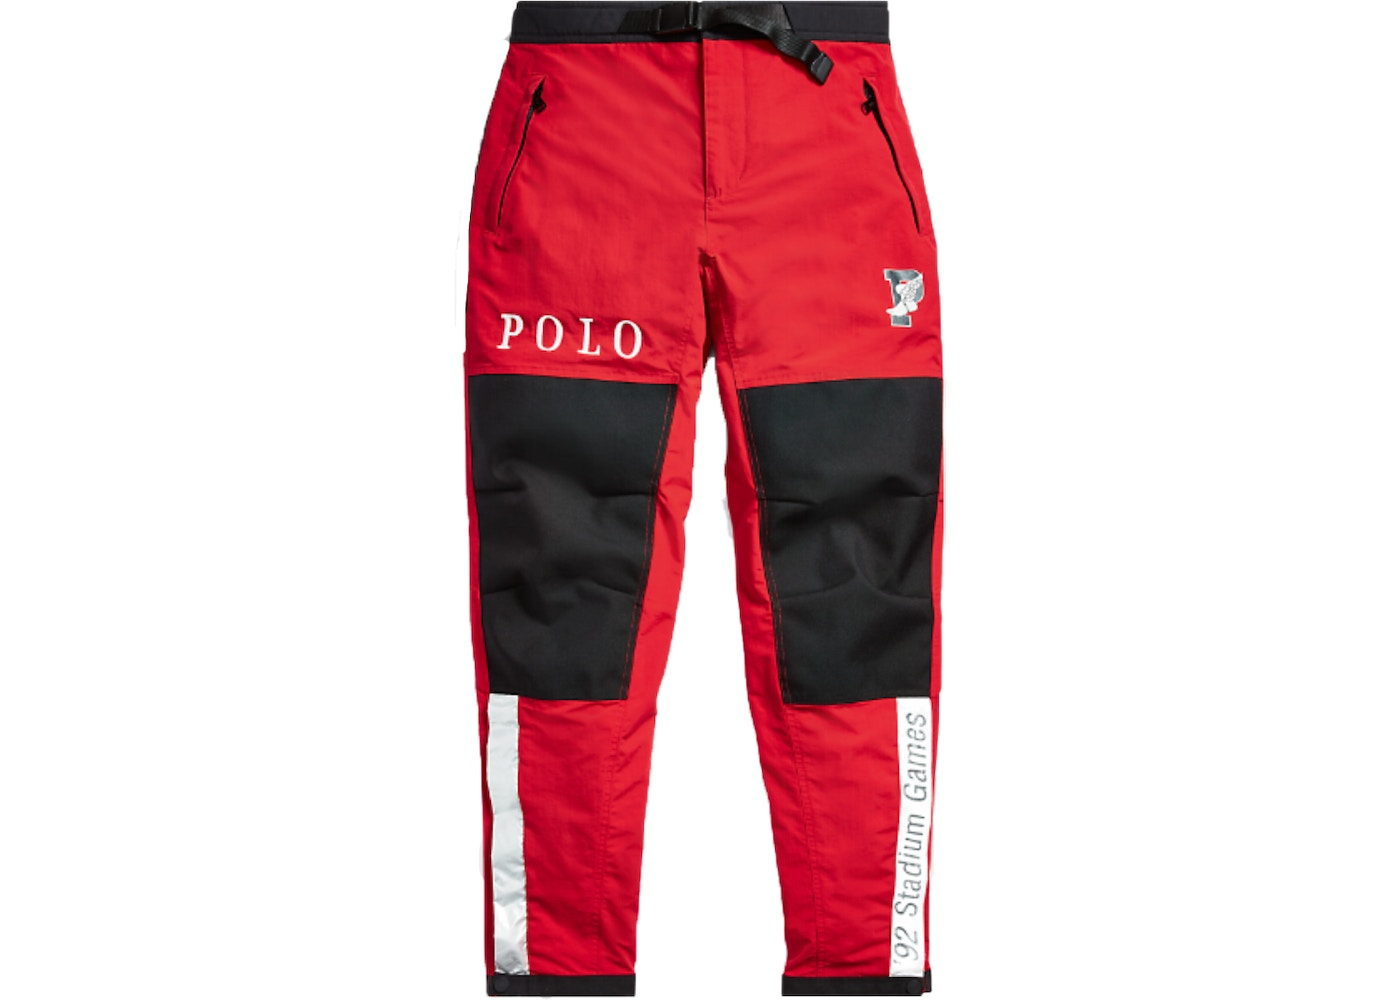 13ea4f9482c59 Other Brands Polo - Buy   Sell Streetwear